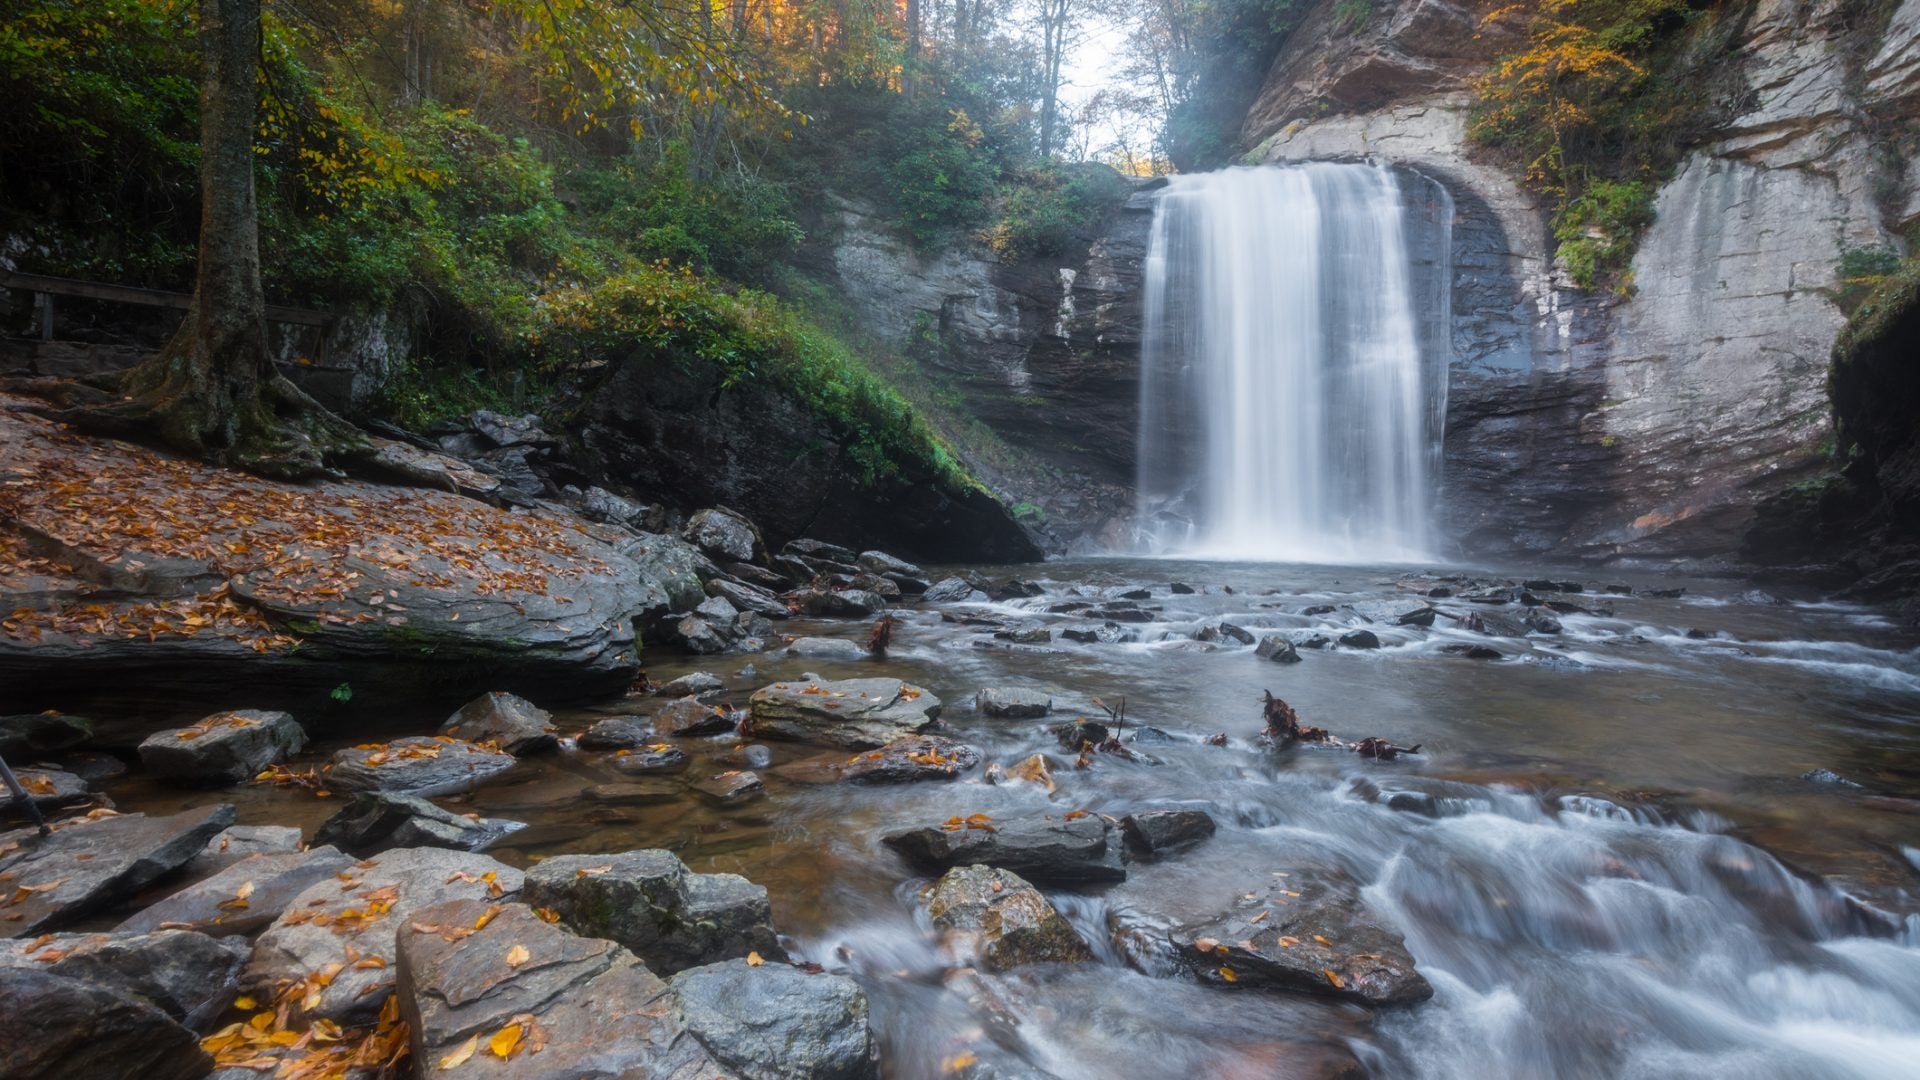 10 Places To See The Best Fall Foliage In 2020